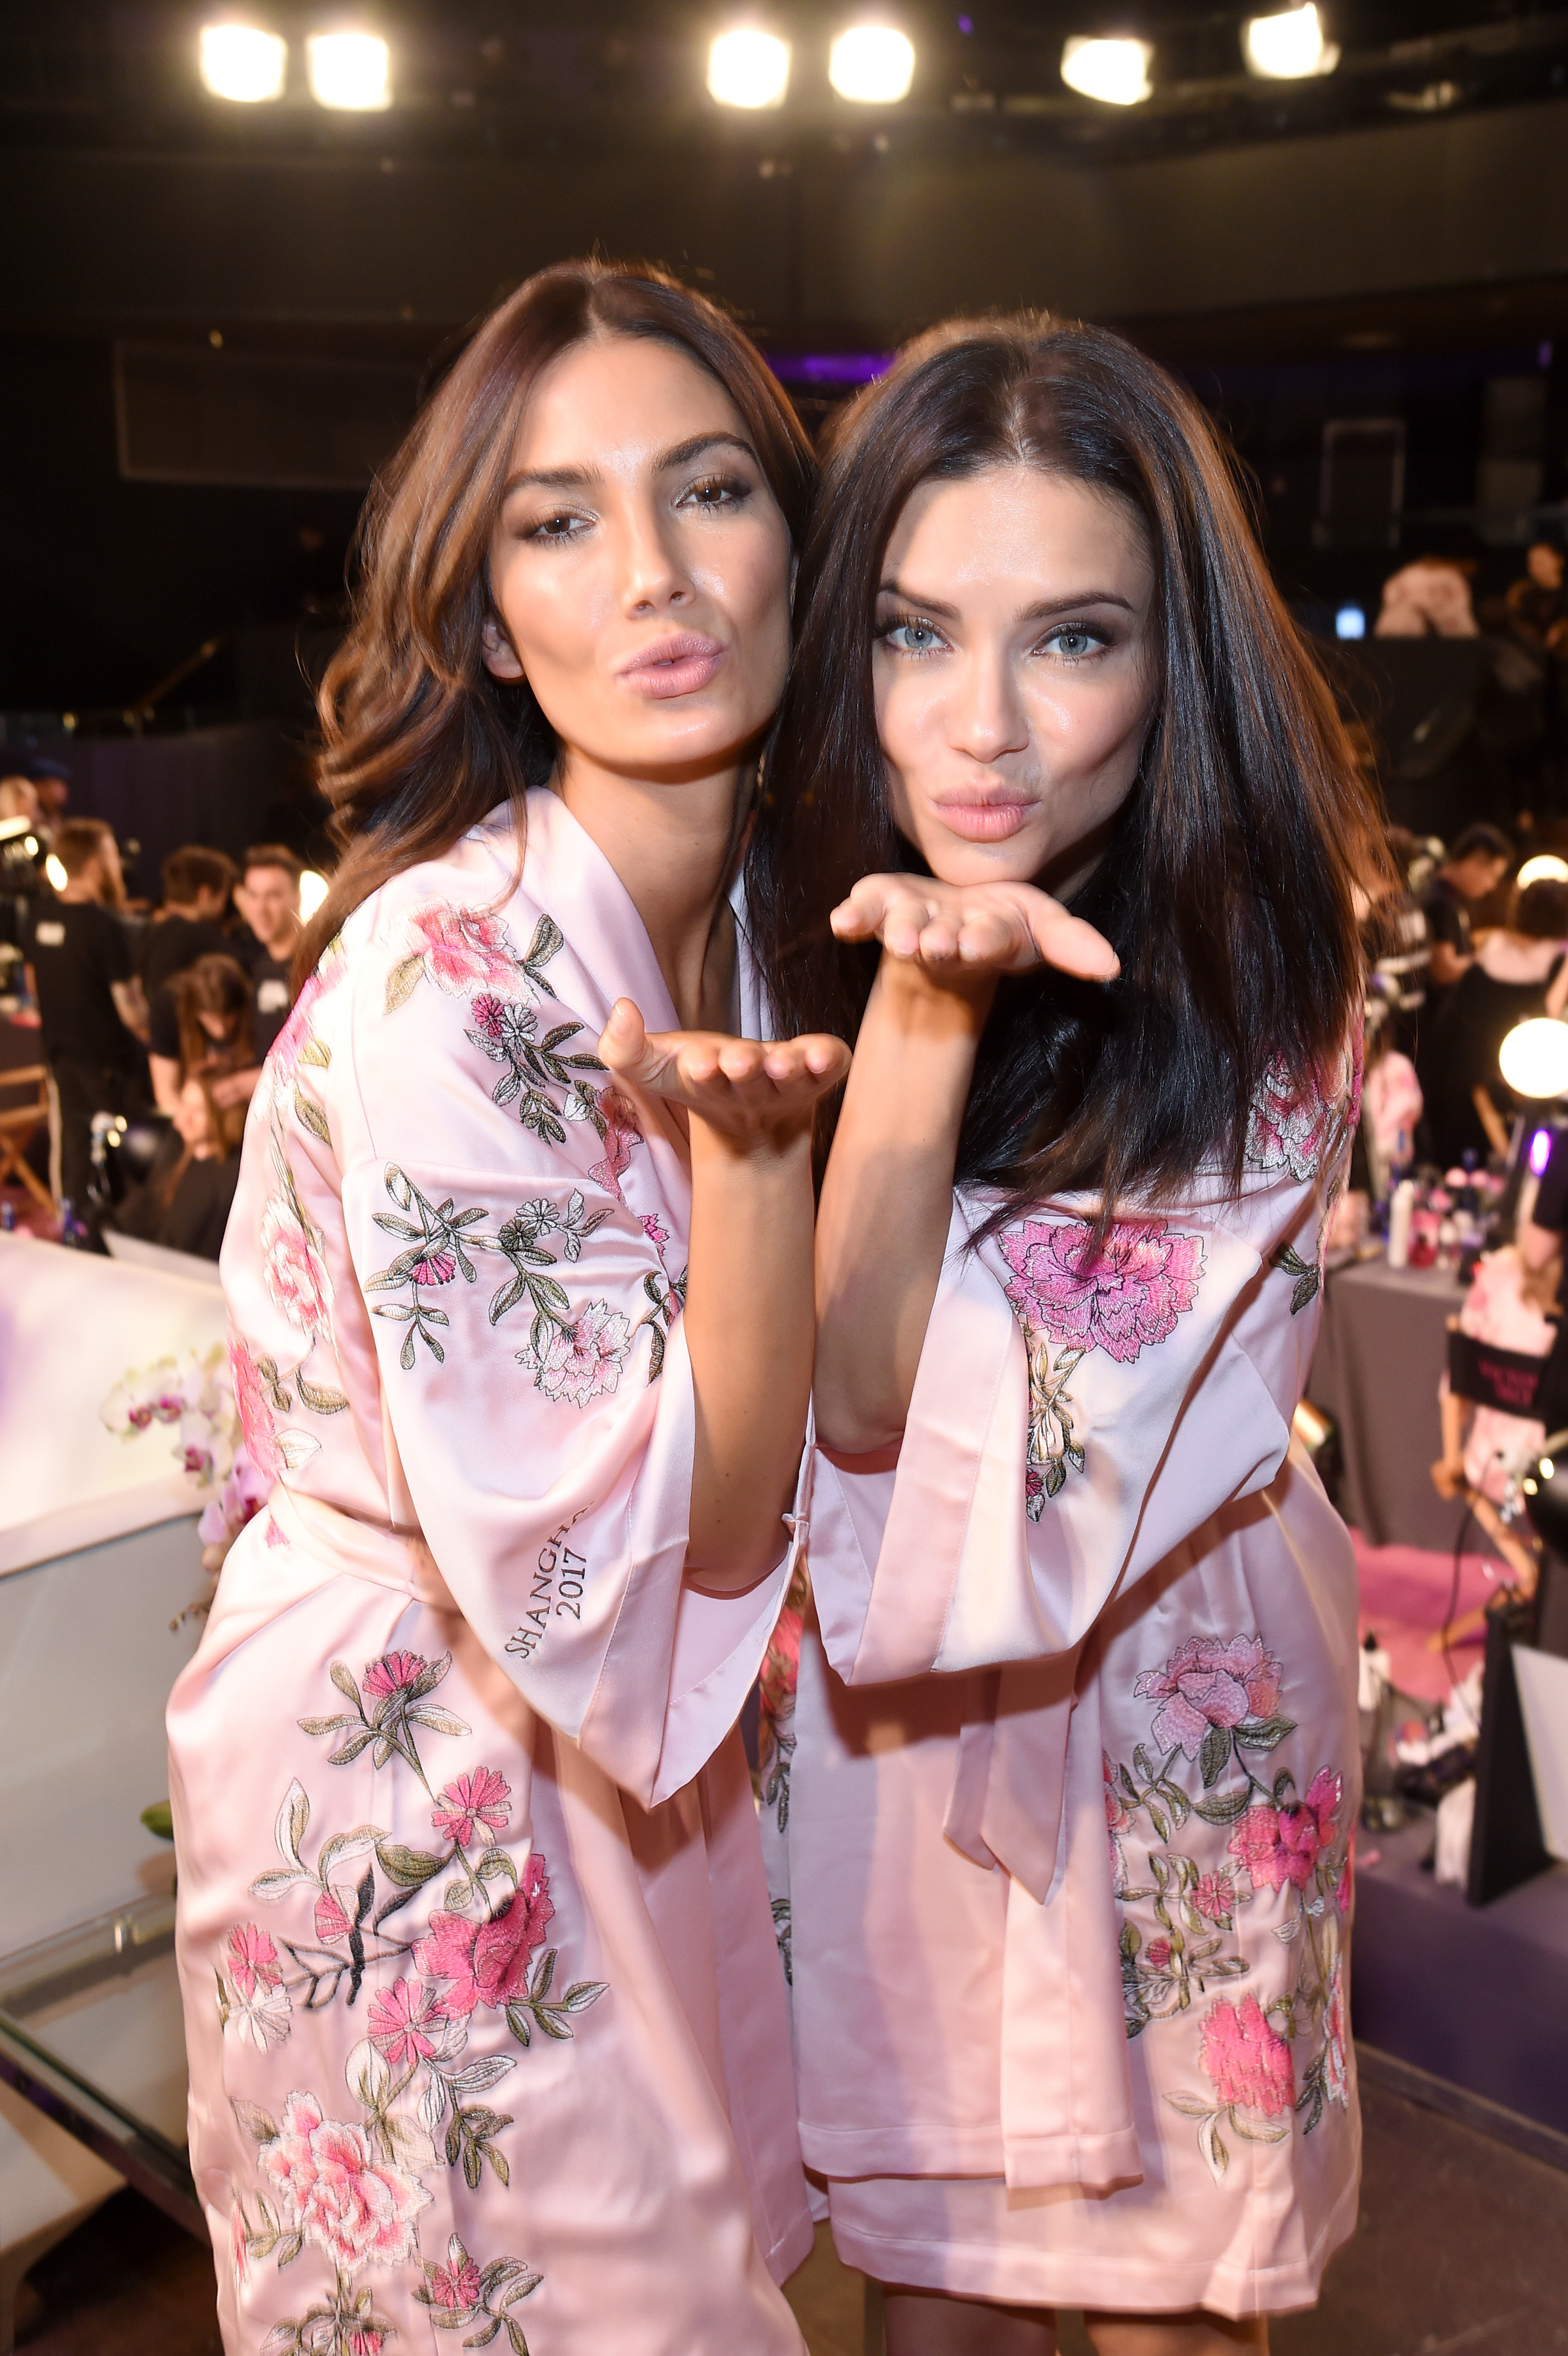 Lily Aldridge and Adriana Lima pose in Hair & Makeup during 2017 Victoria's Secret Fashion Show at Mercedes Benz Arena in Shanghai on Nov. 20, 2017.